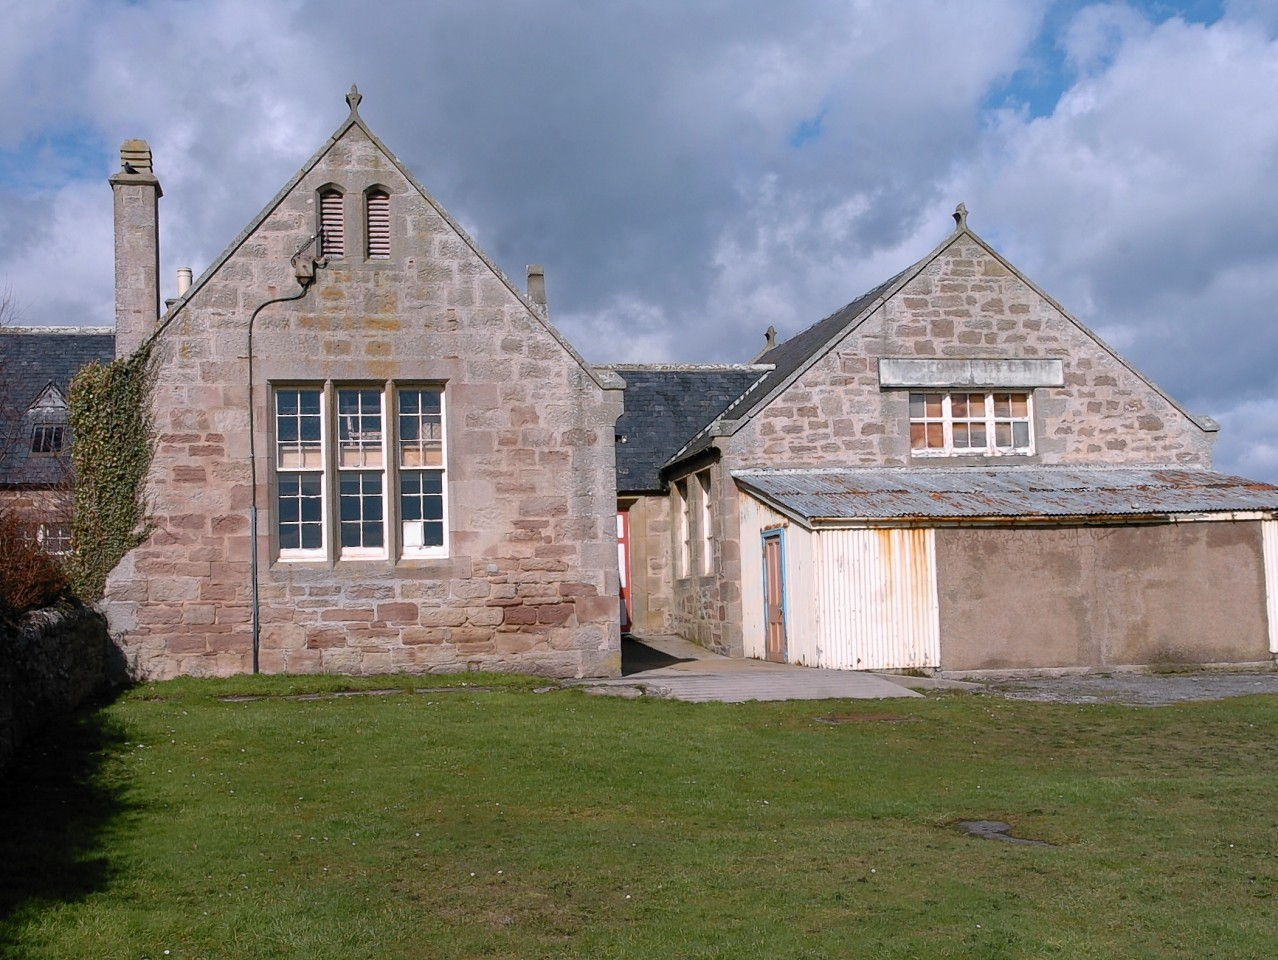 Embo Old School which is to be converted into a £1.3million community centre